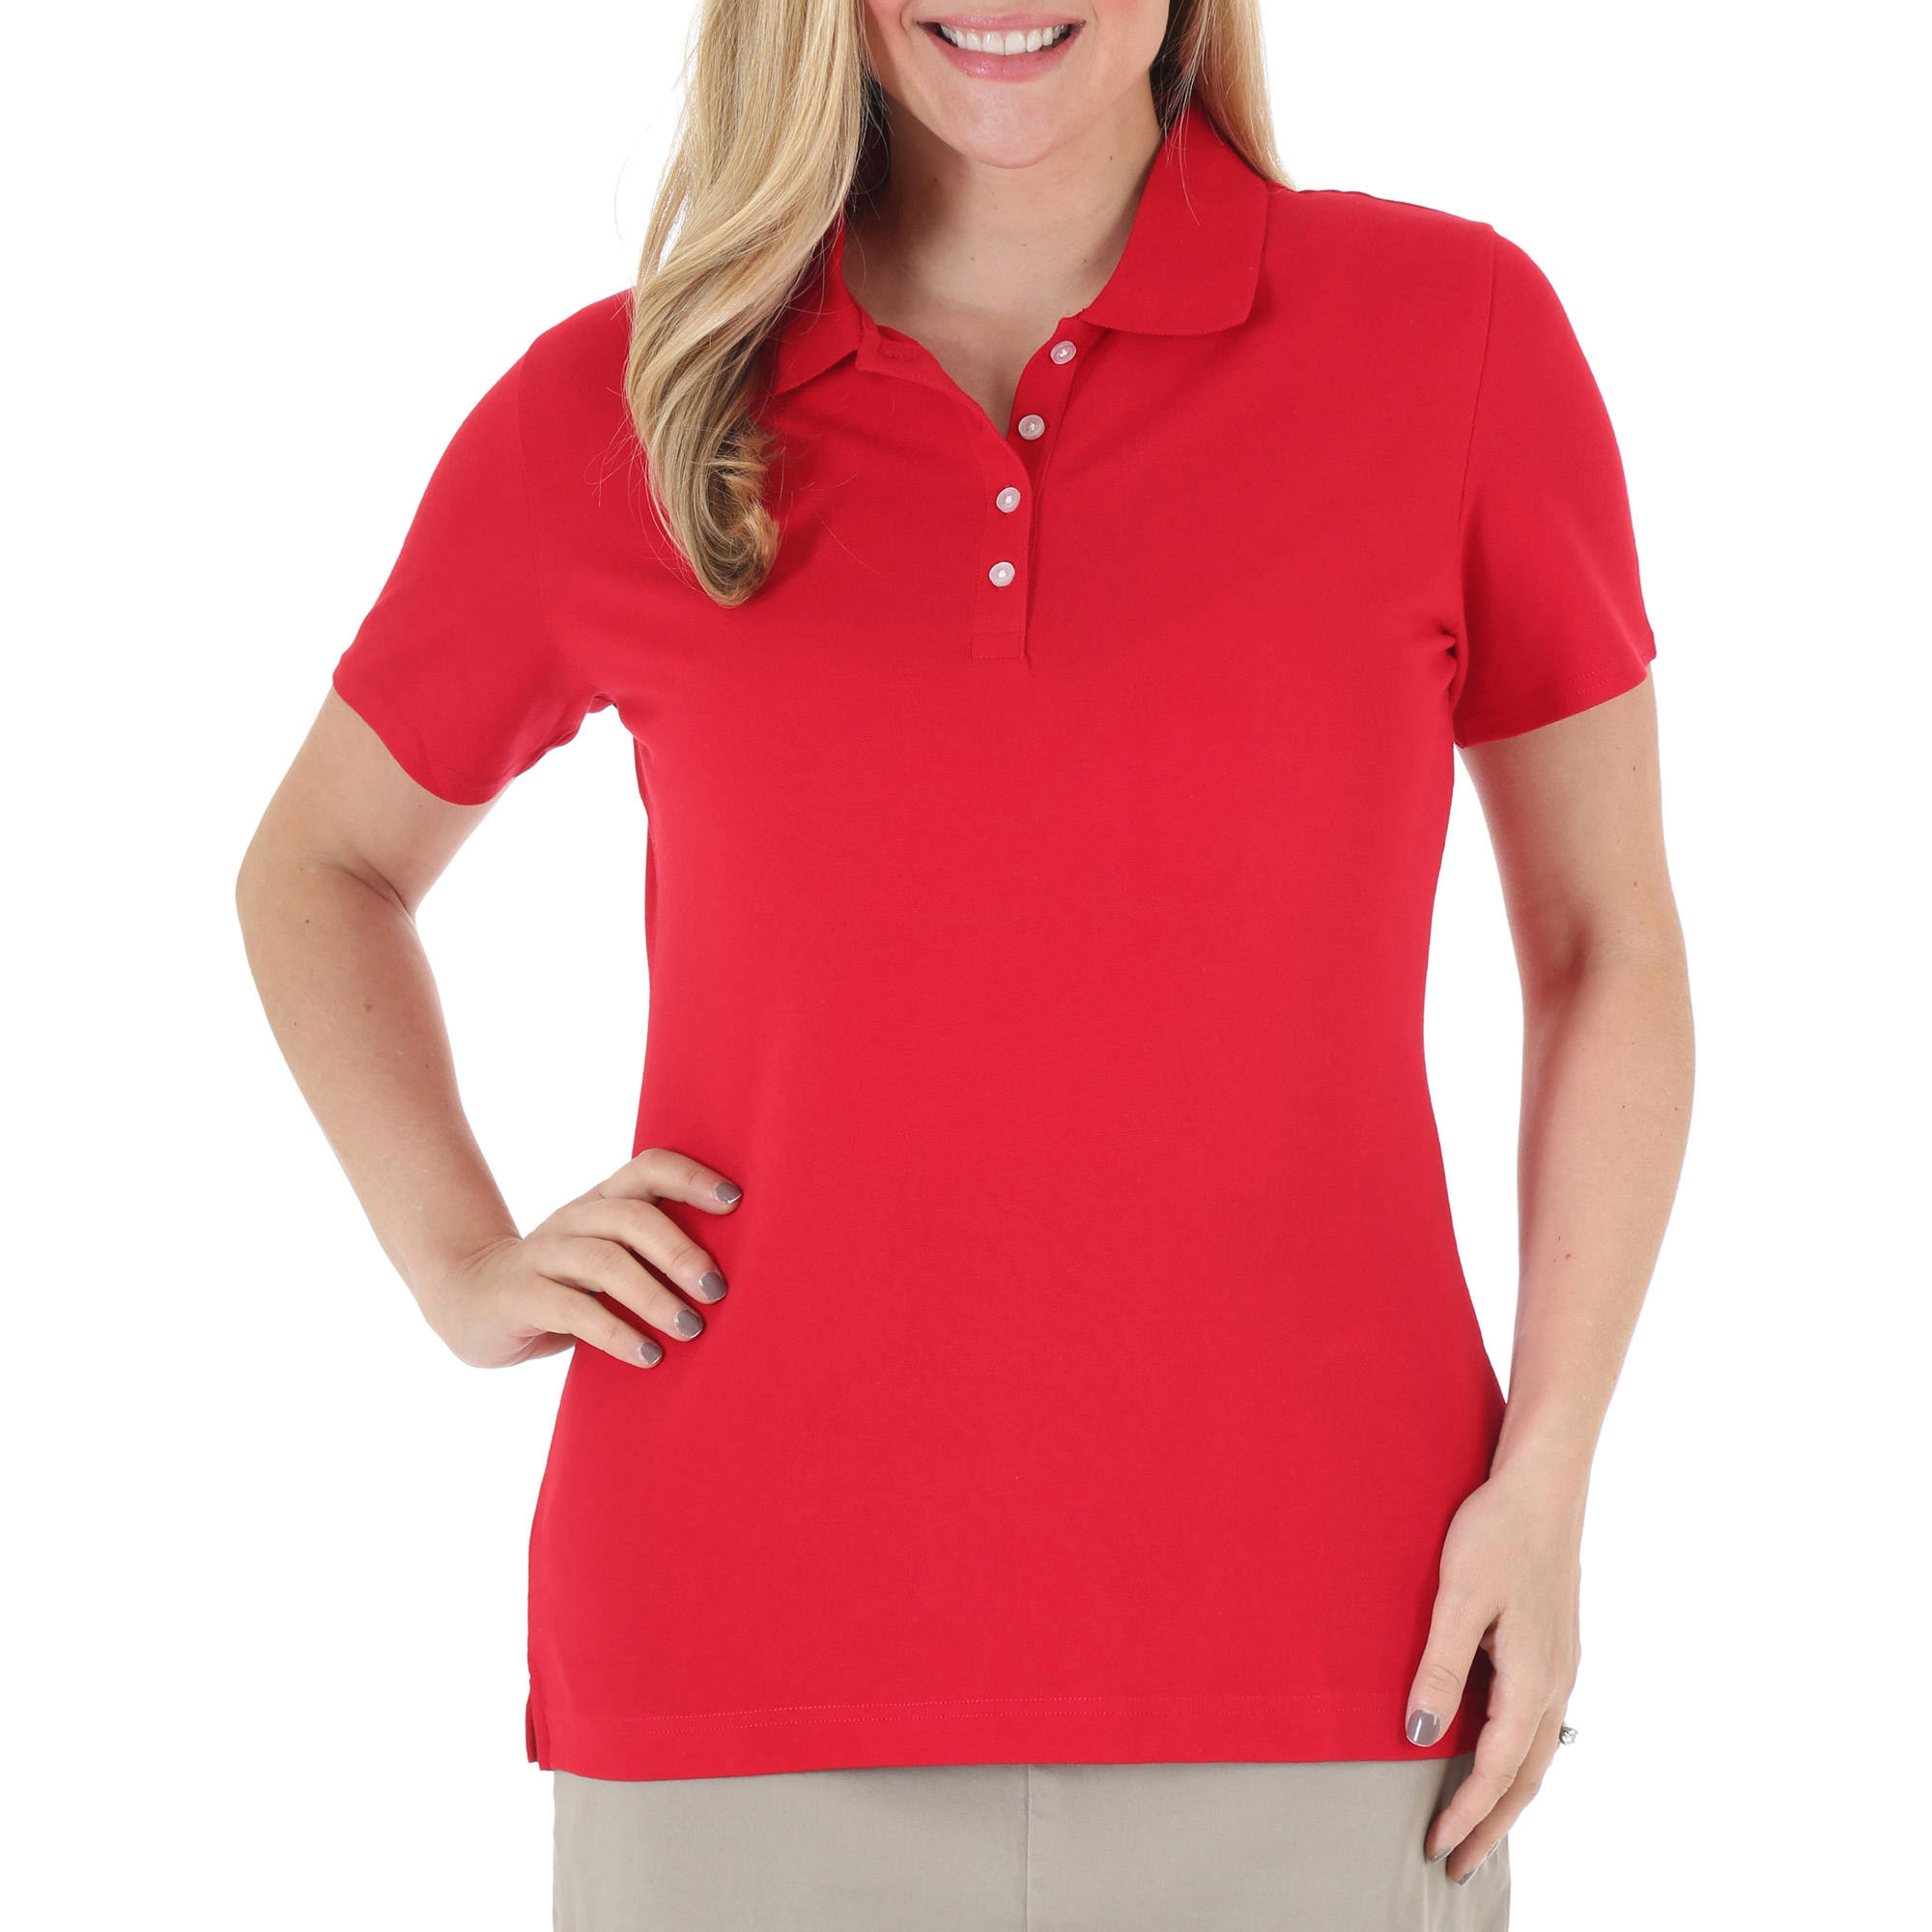 Online Riders By Lee Womens Plus Size Short Sleeve Polo Grosir Kaos Distro  Min 4 Pcs